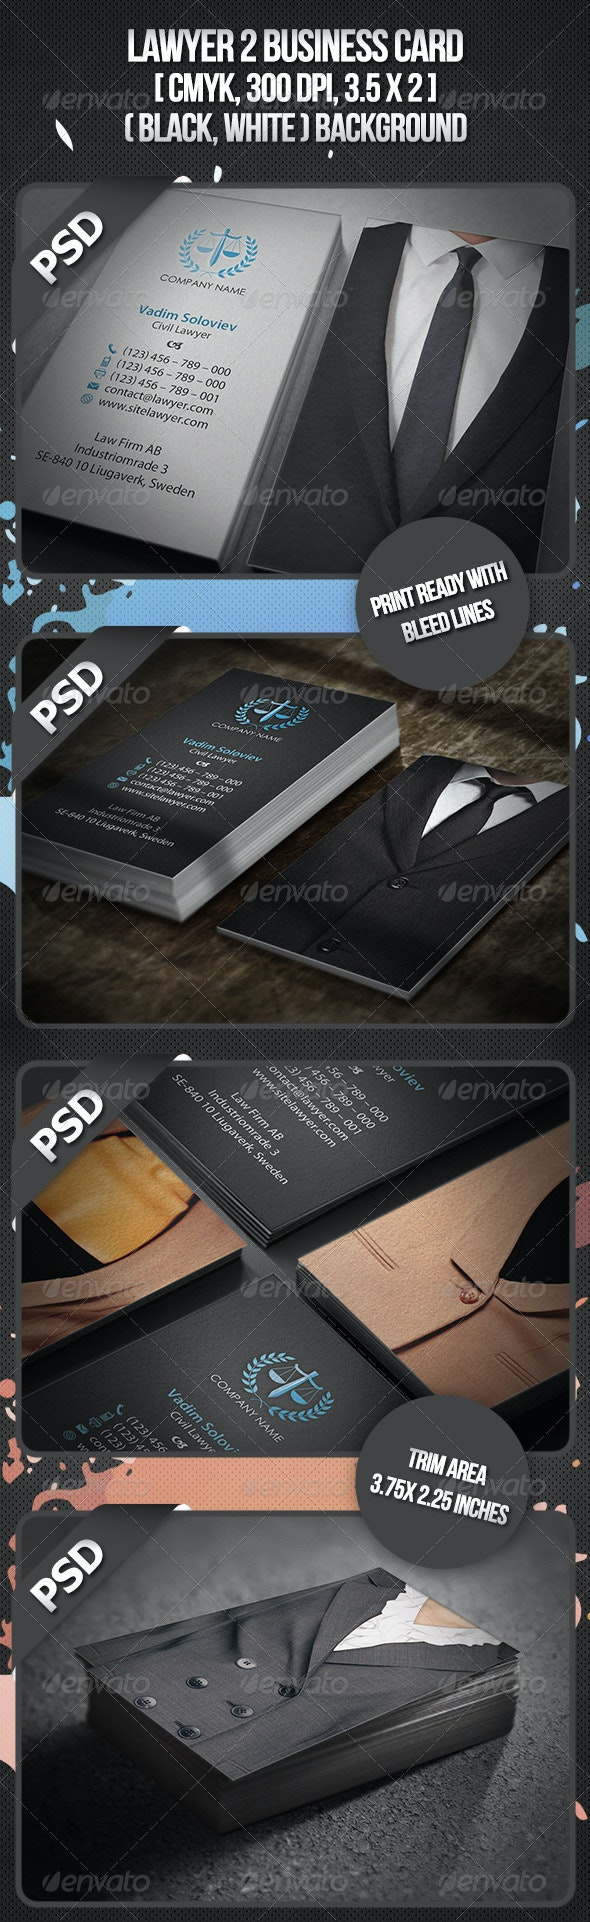 Lawyer 2 Business Card - Business Cards Print Templates